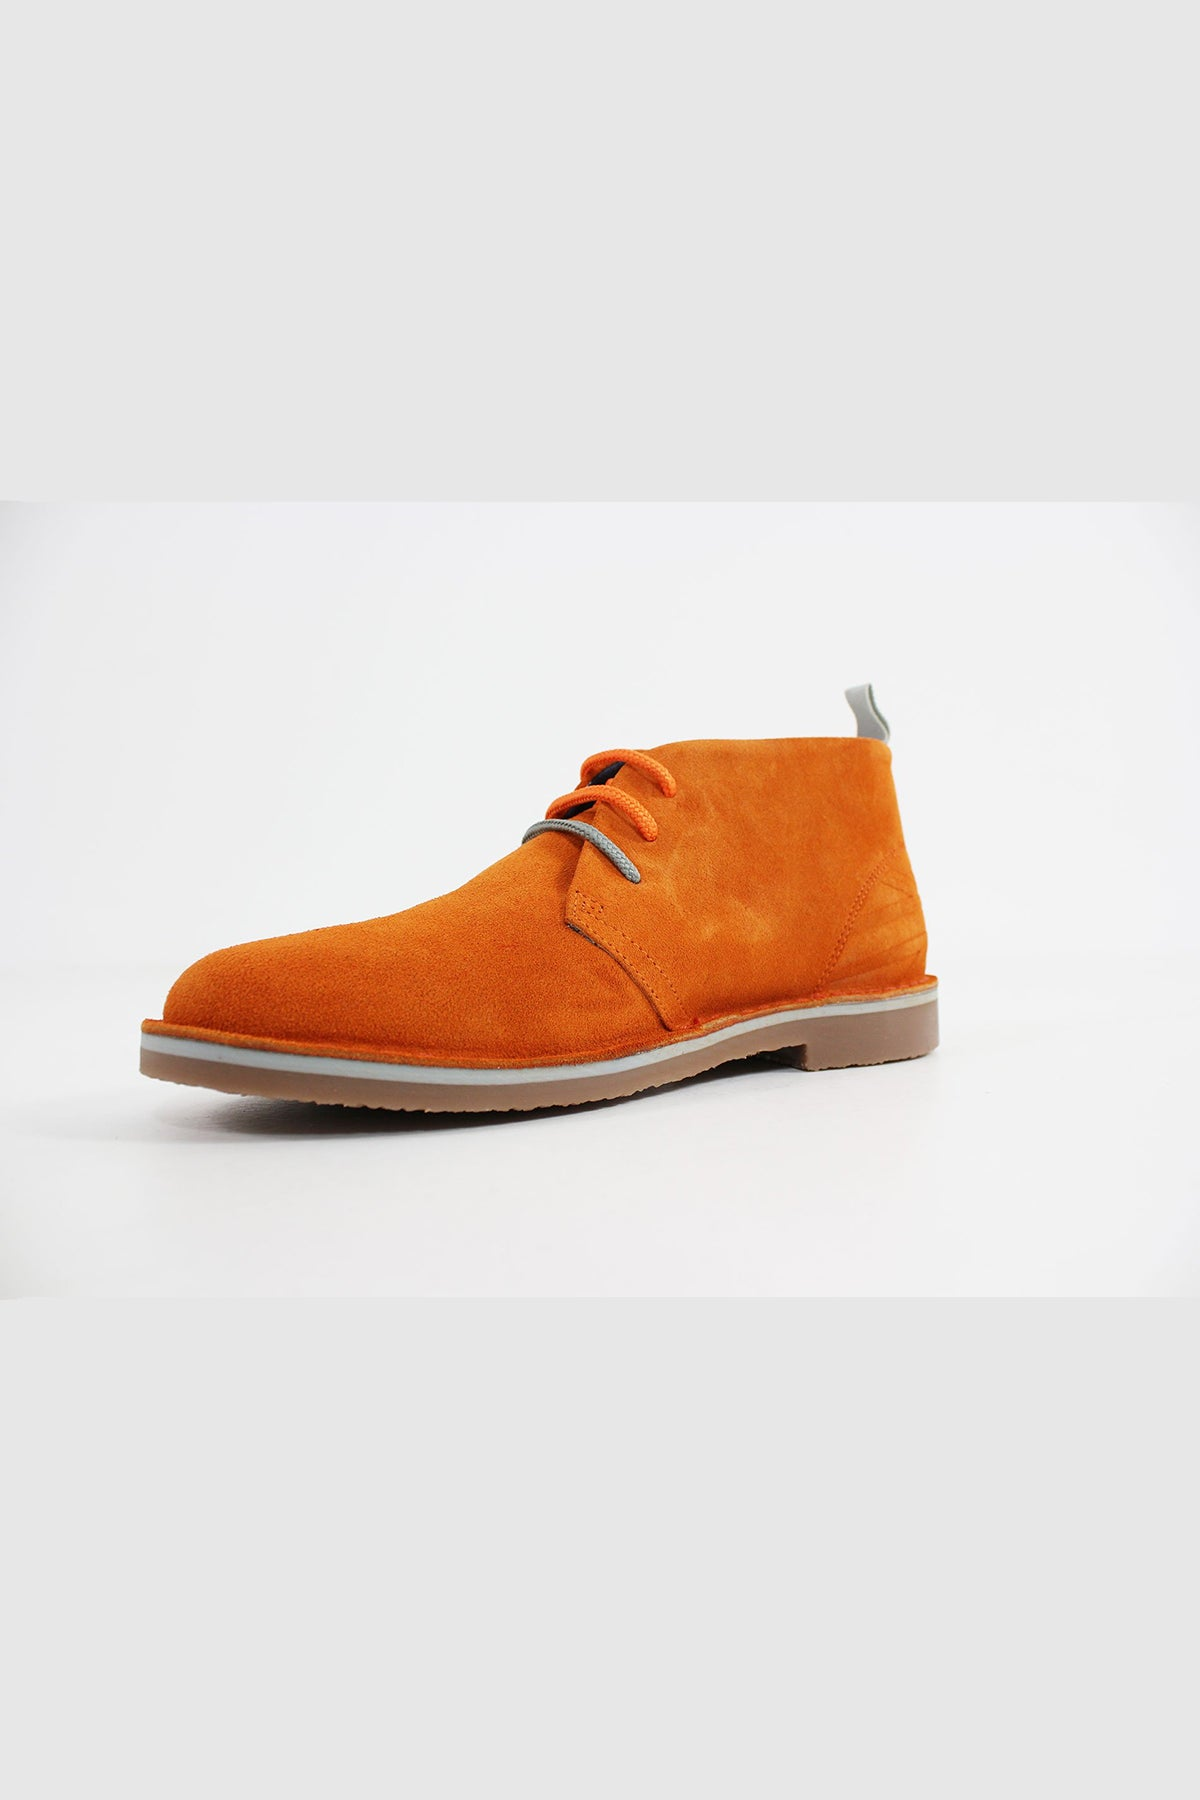 Submarine London - New Manchester Suede (Claw-Ciment)